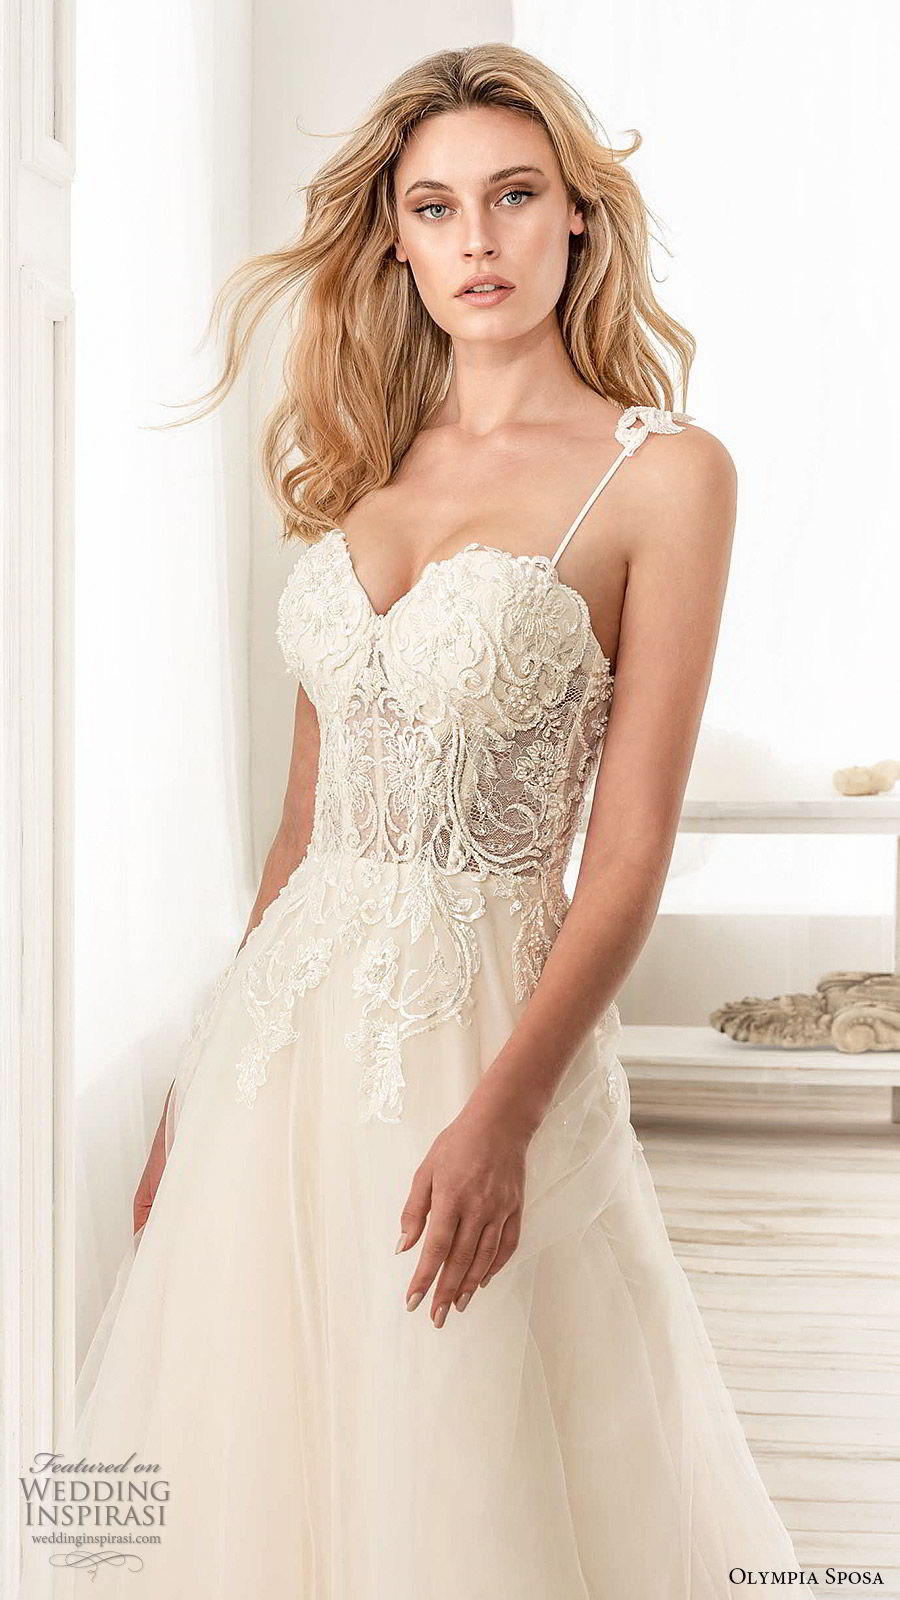 olympia sposa 2020 bridal sleeveless straps sweetheart neckline lace embellished bodice a line ball gown wedding dress (11) romantic princess chapel train zv